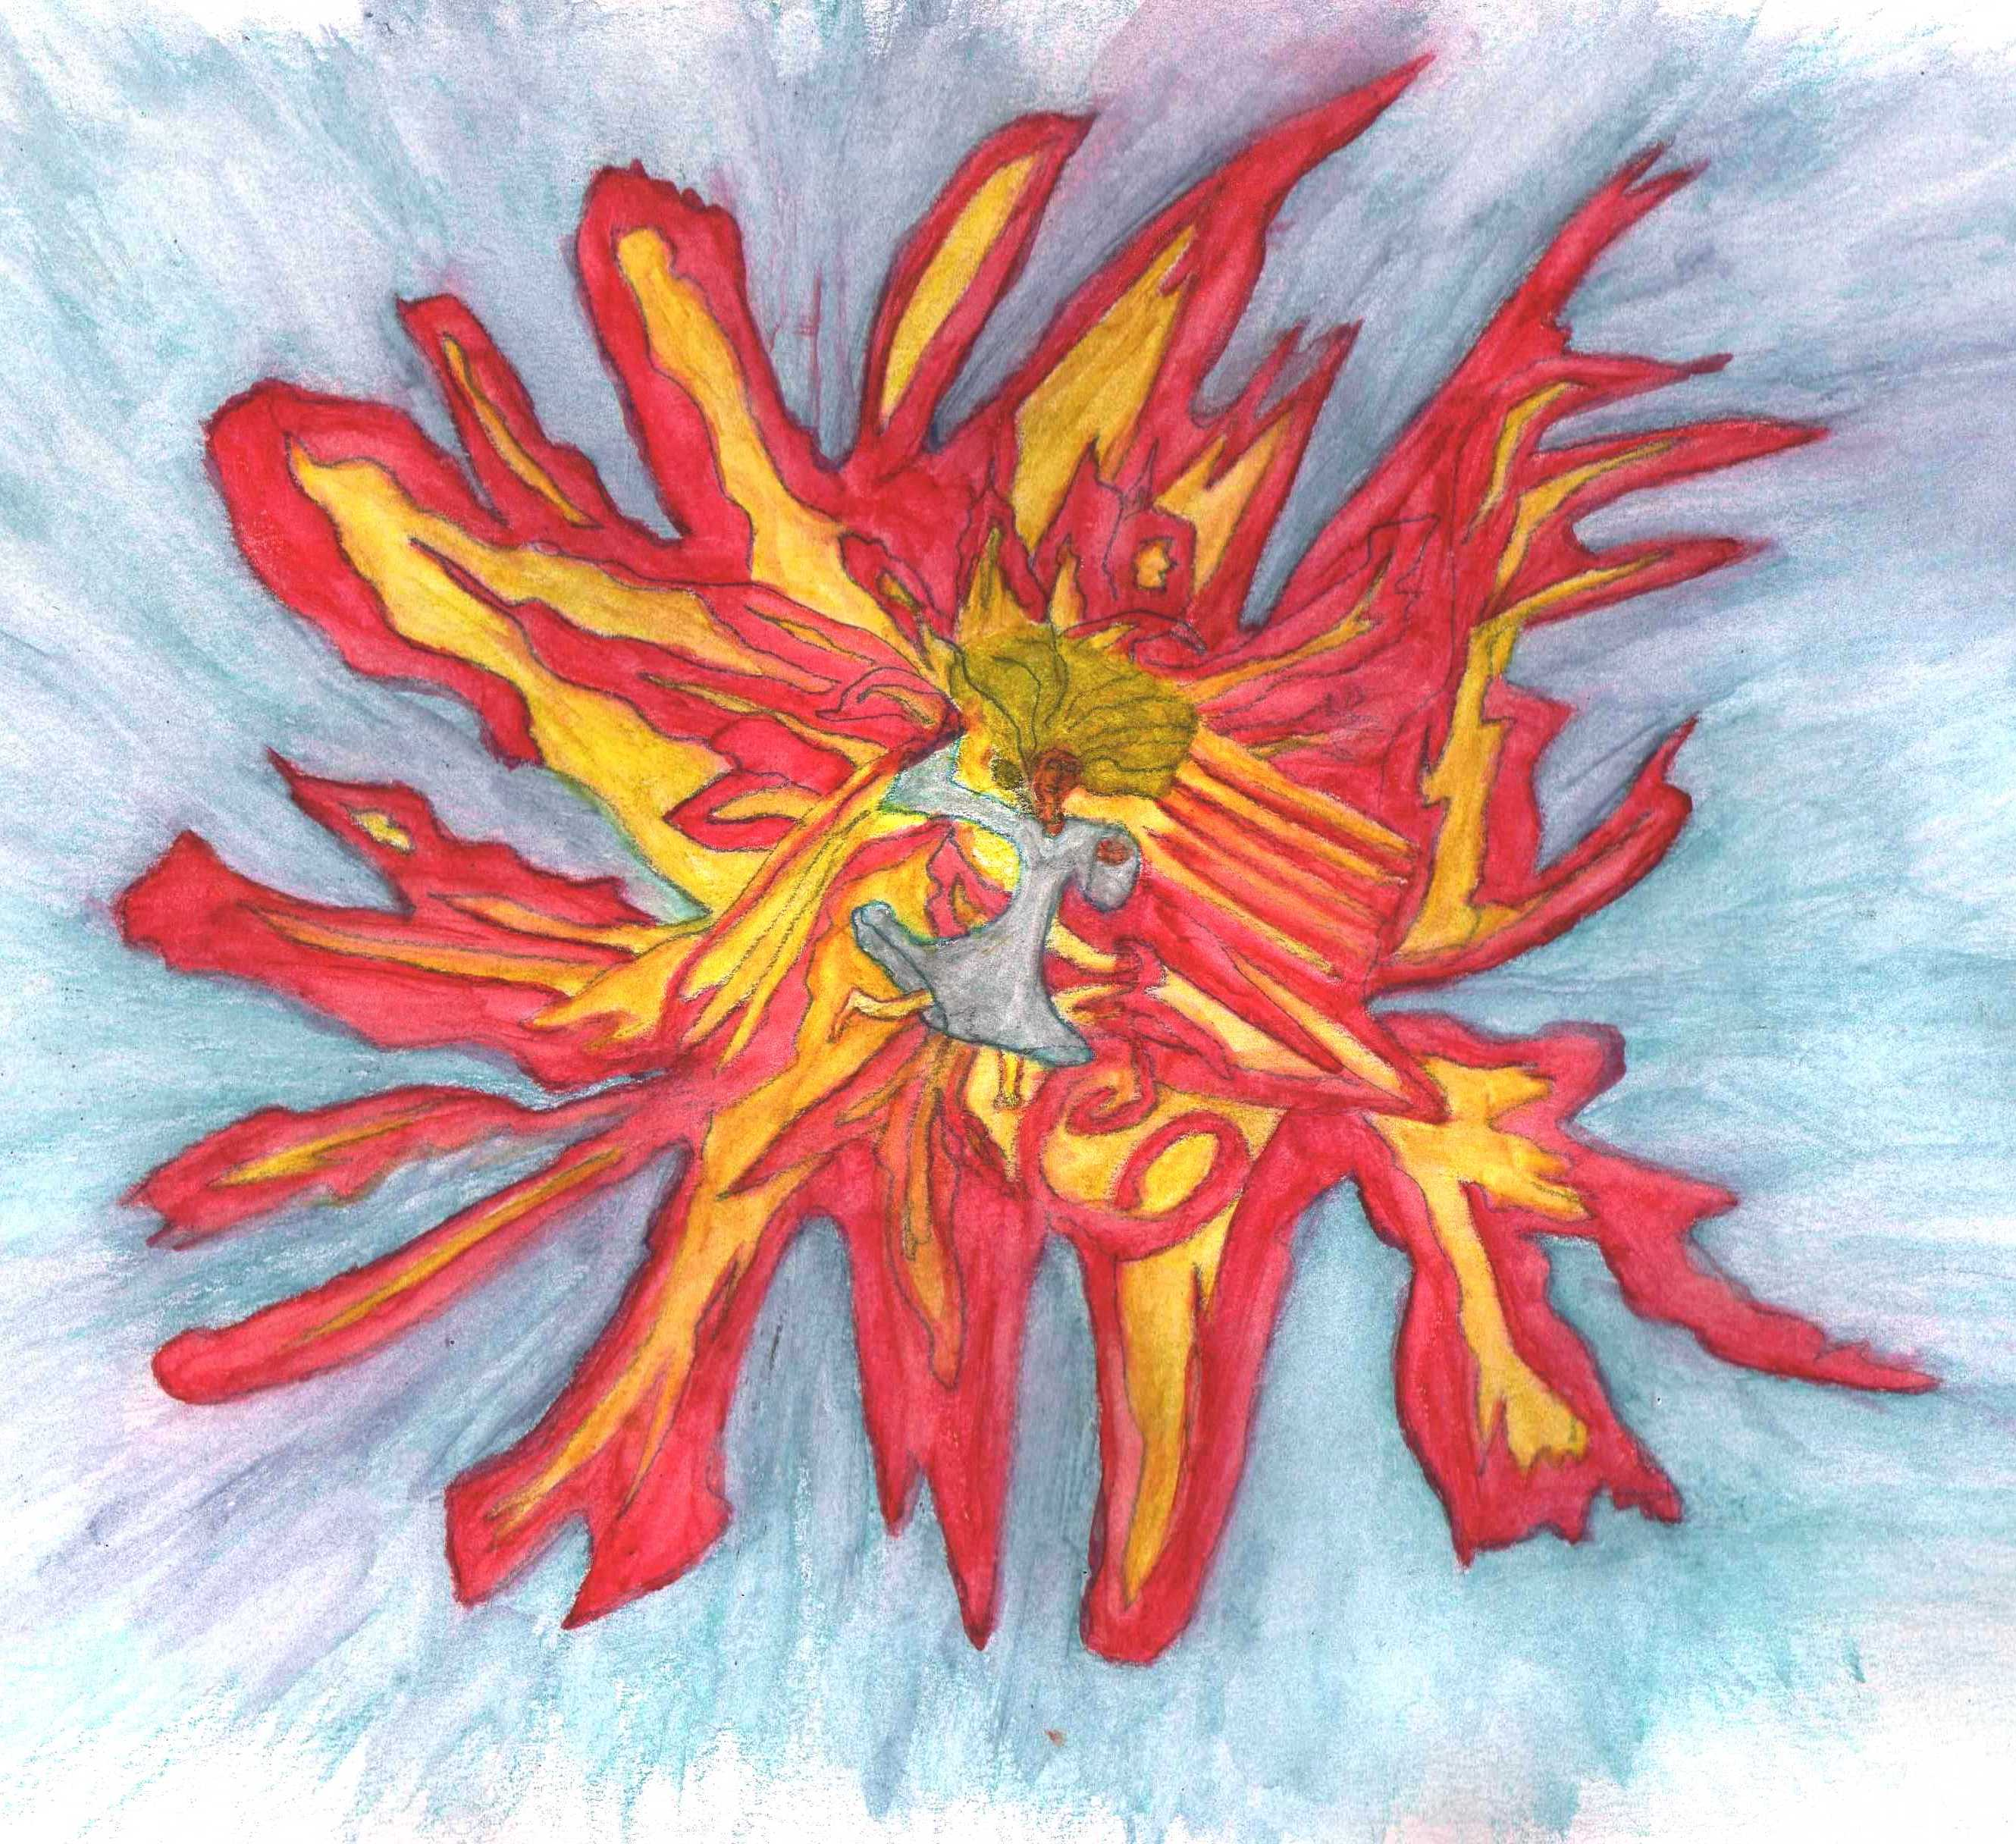 falling flames 02 painted squared up 06